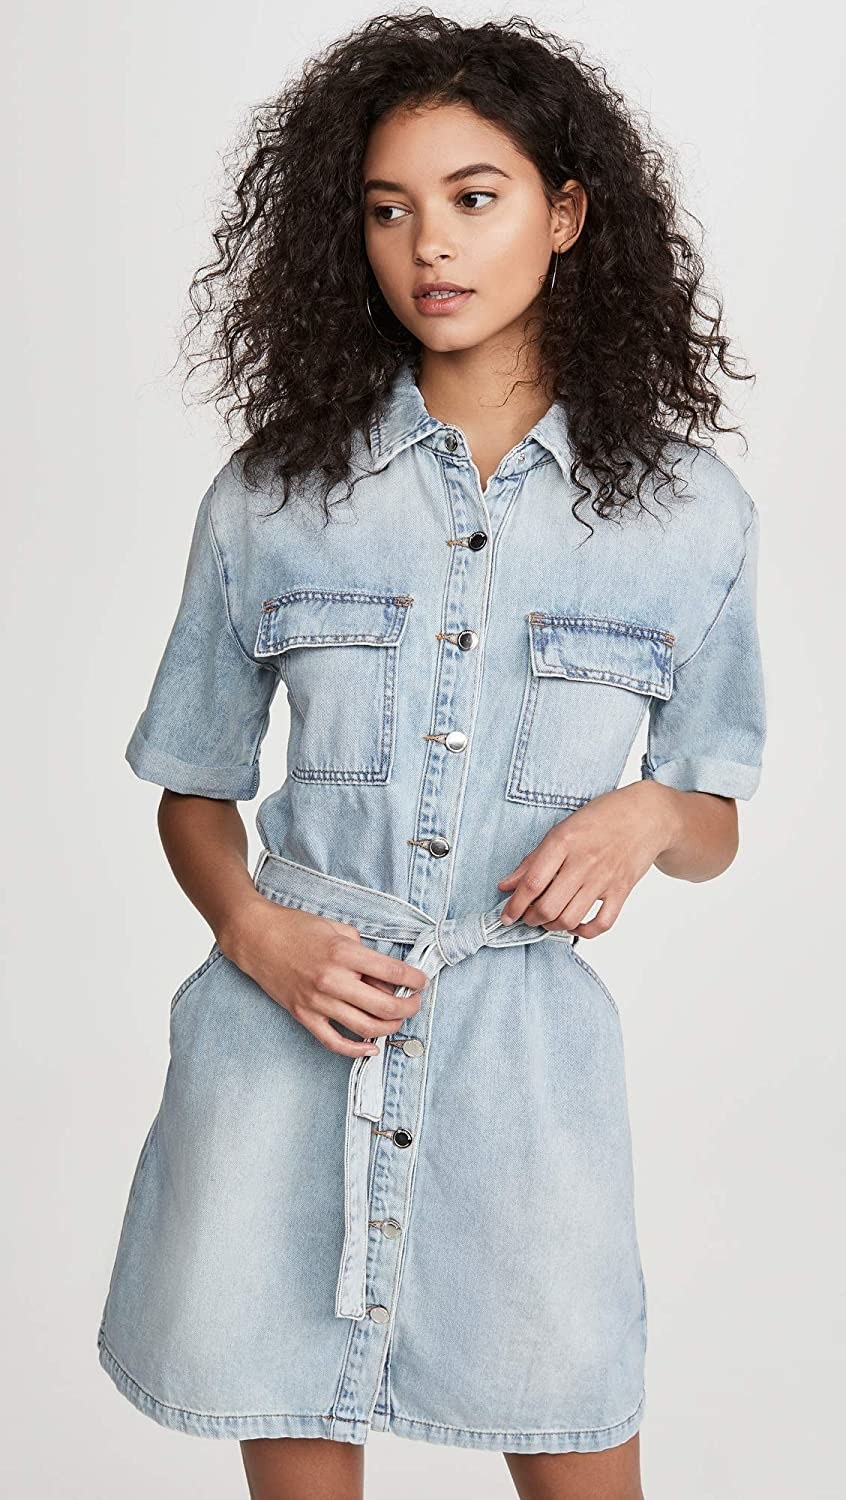 Model wearing the shirtdress with flapped pockets on either side of the chest, silver buttons down the front and a tie around the waist